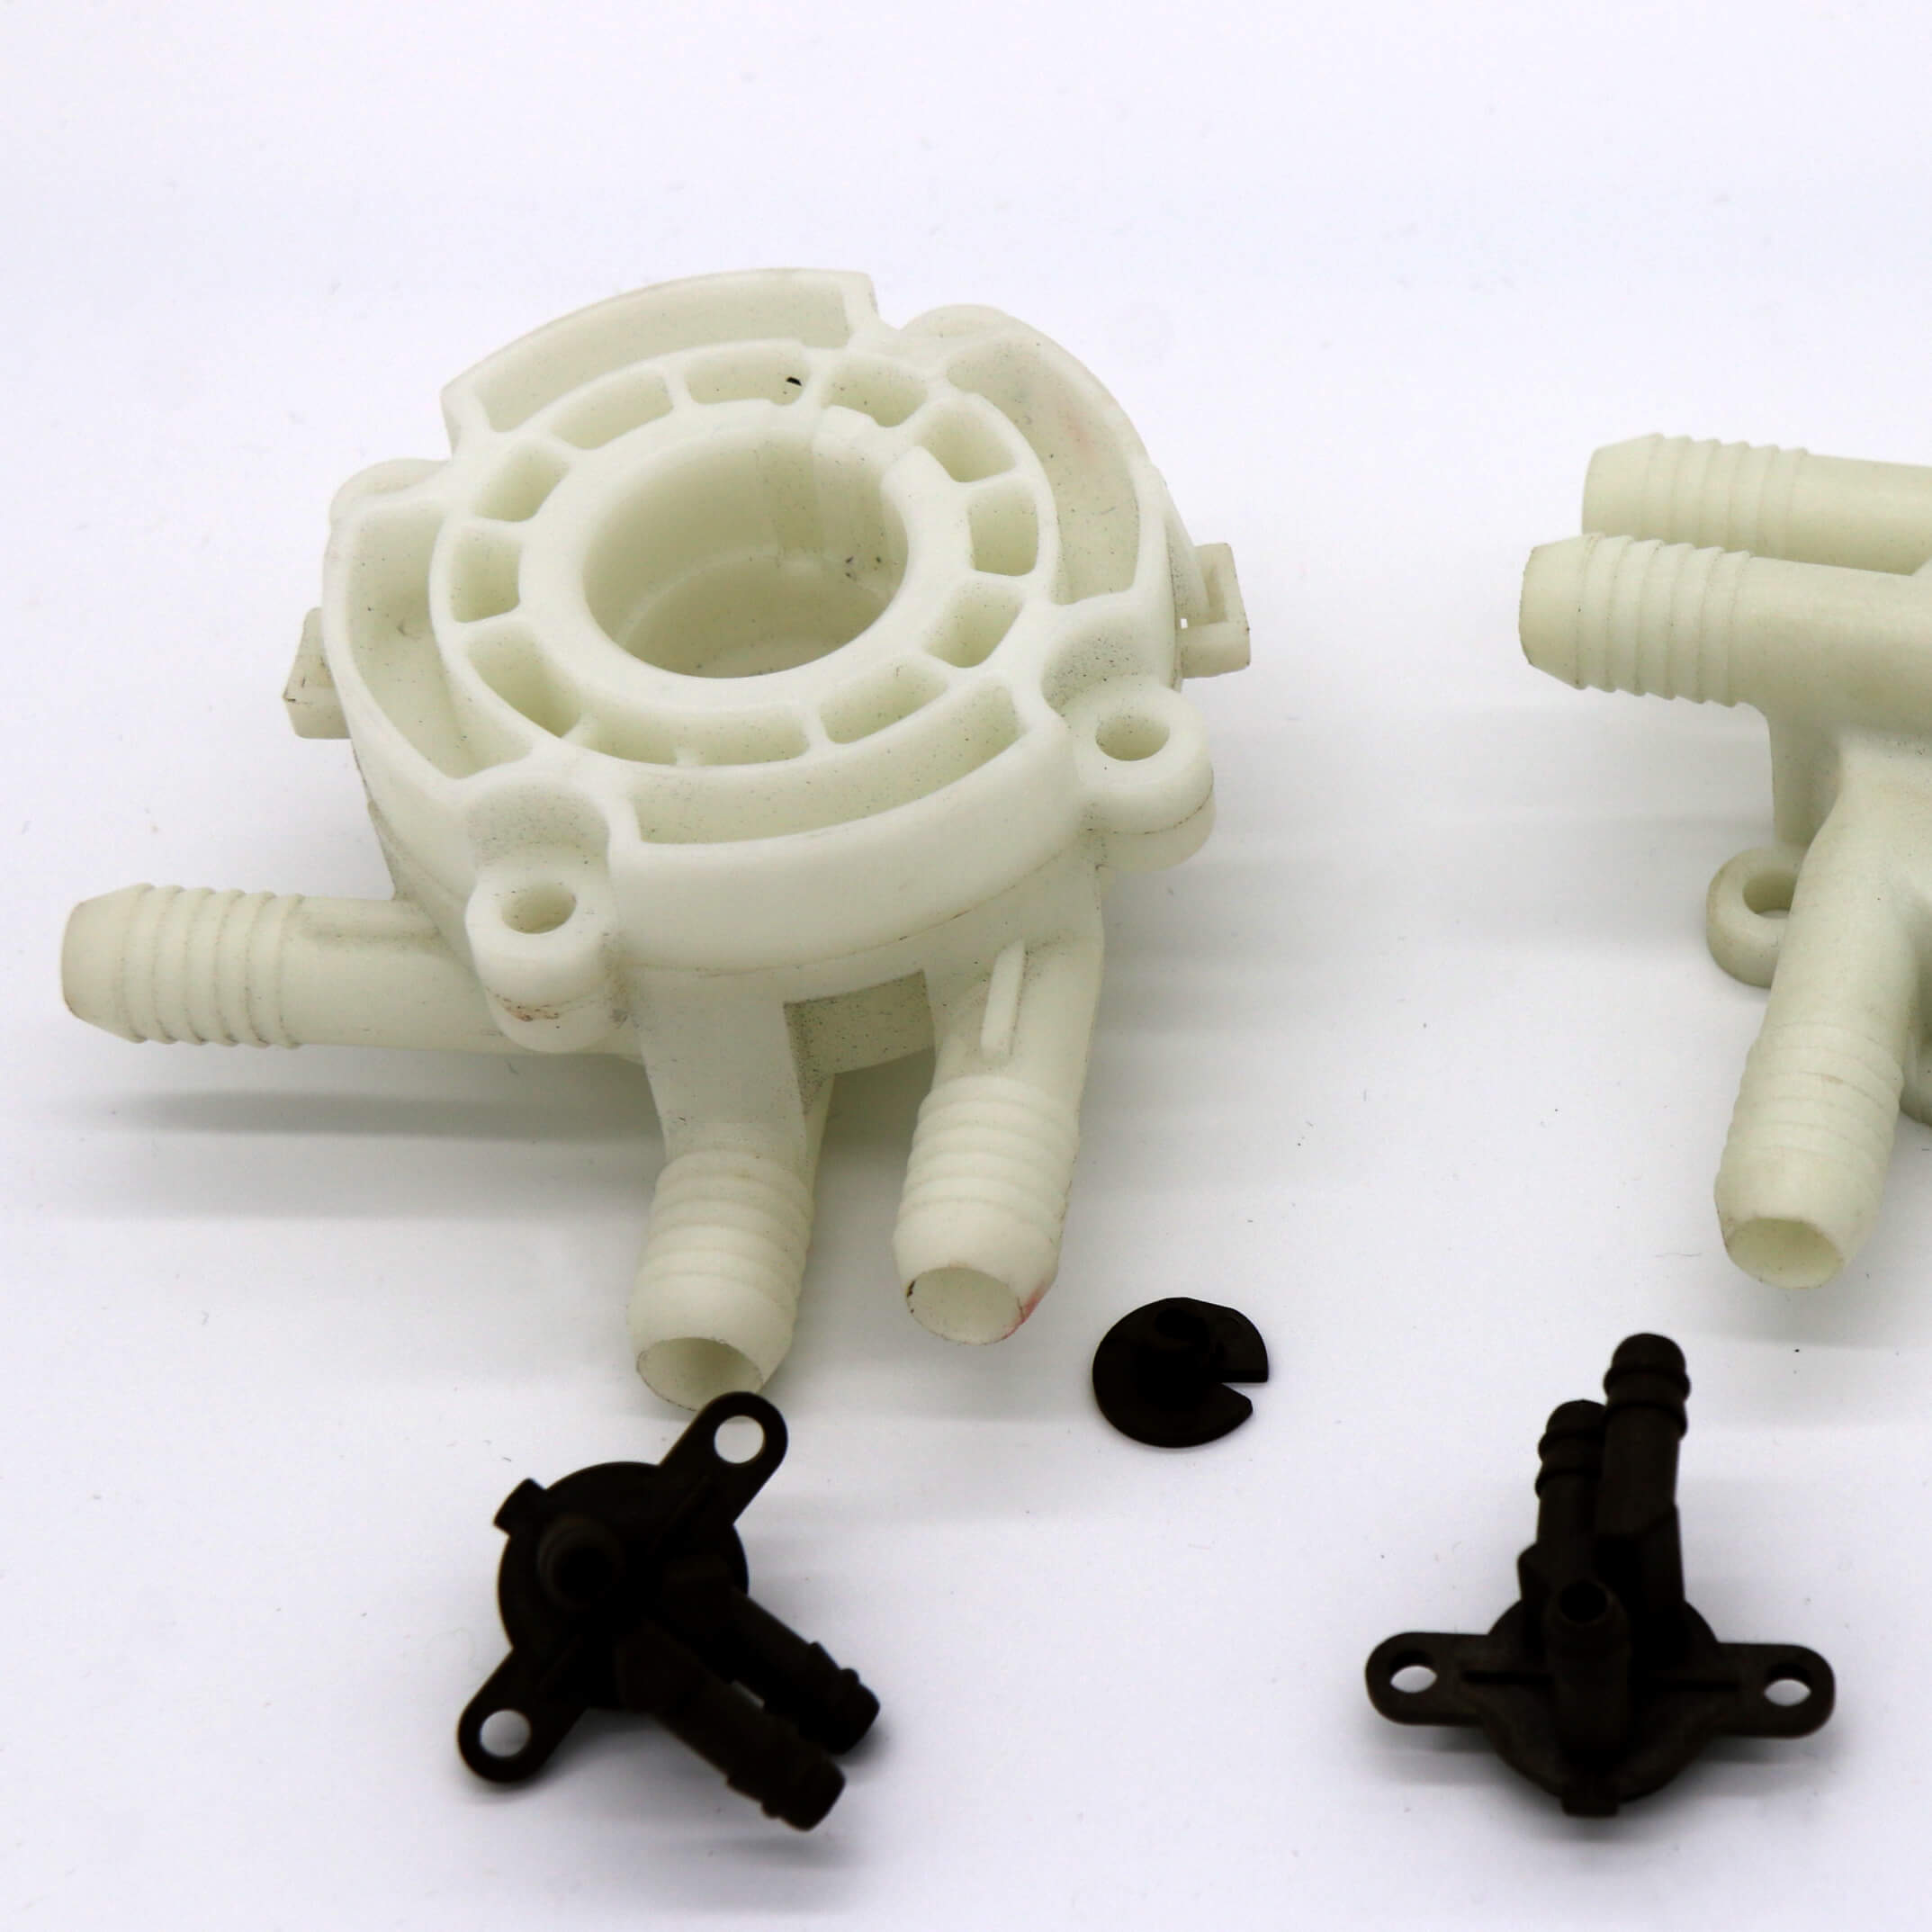 Plastic pump body, PP, ABS, Nylon, UL rated, environmentally friendly, imported raw material